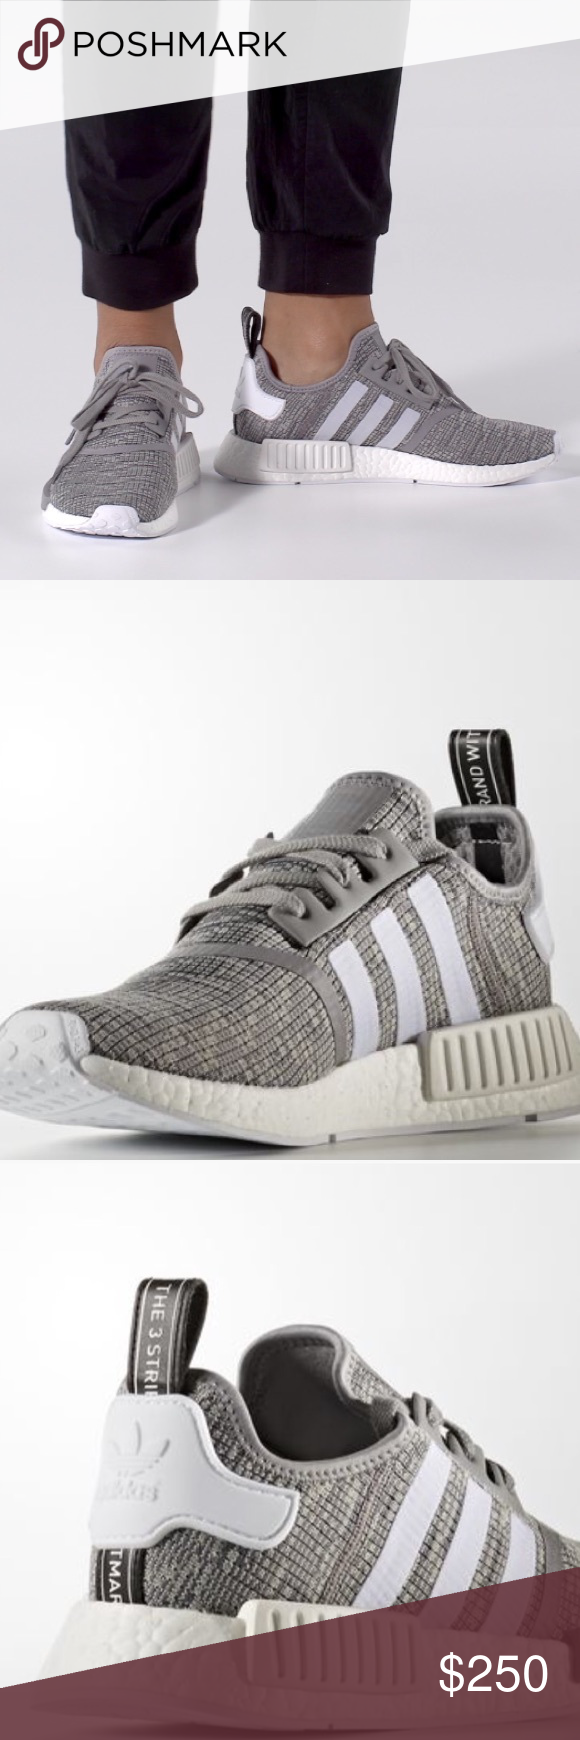 fe4491970 ADIDAS NMD R1 SNEAKERS-More photos will be up Sat. I have a Size 5 ...